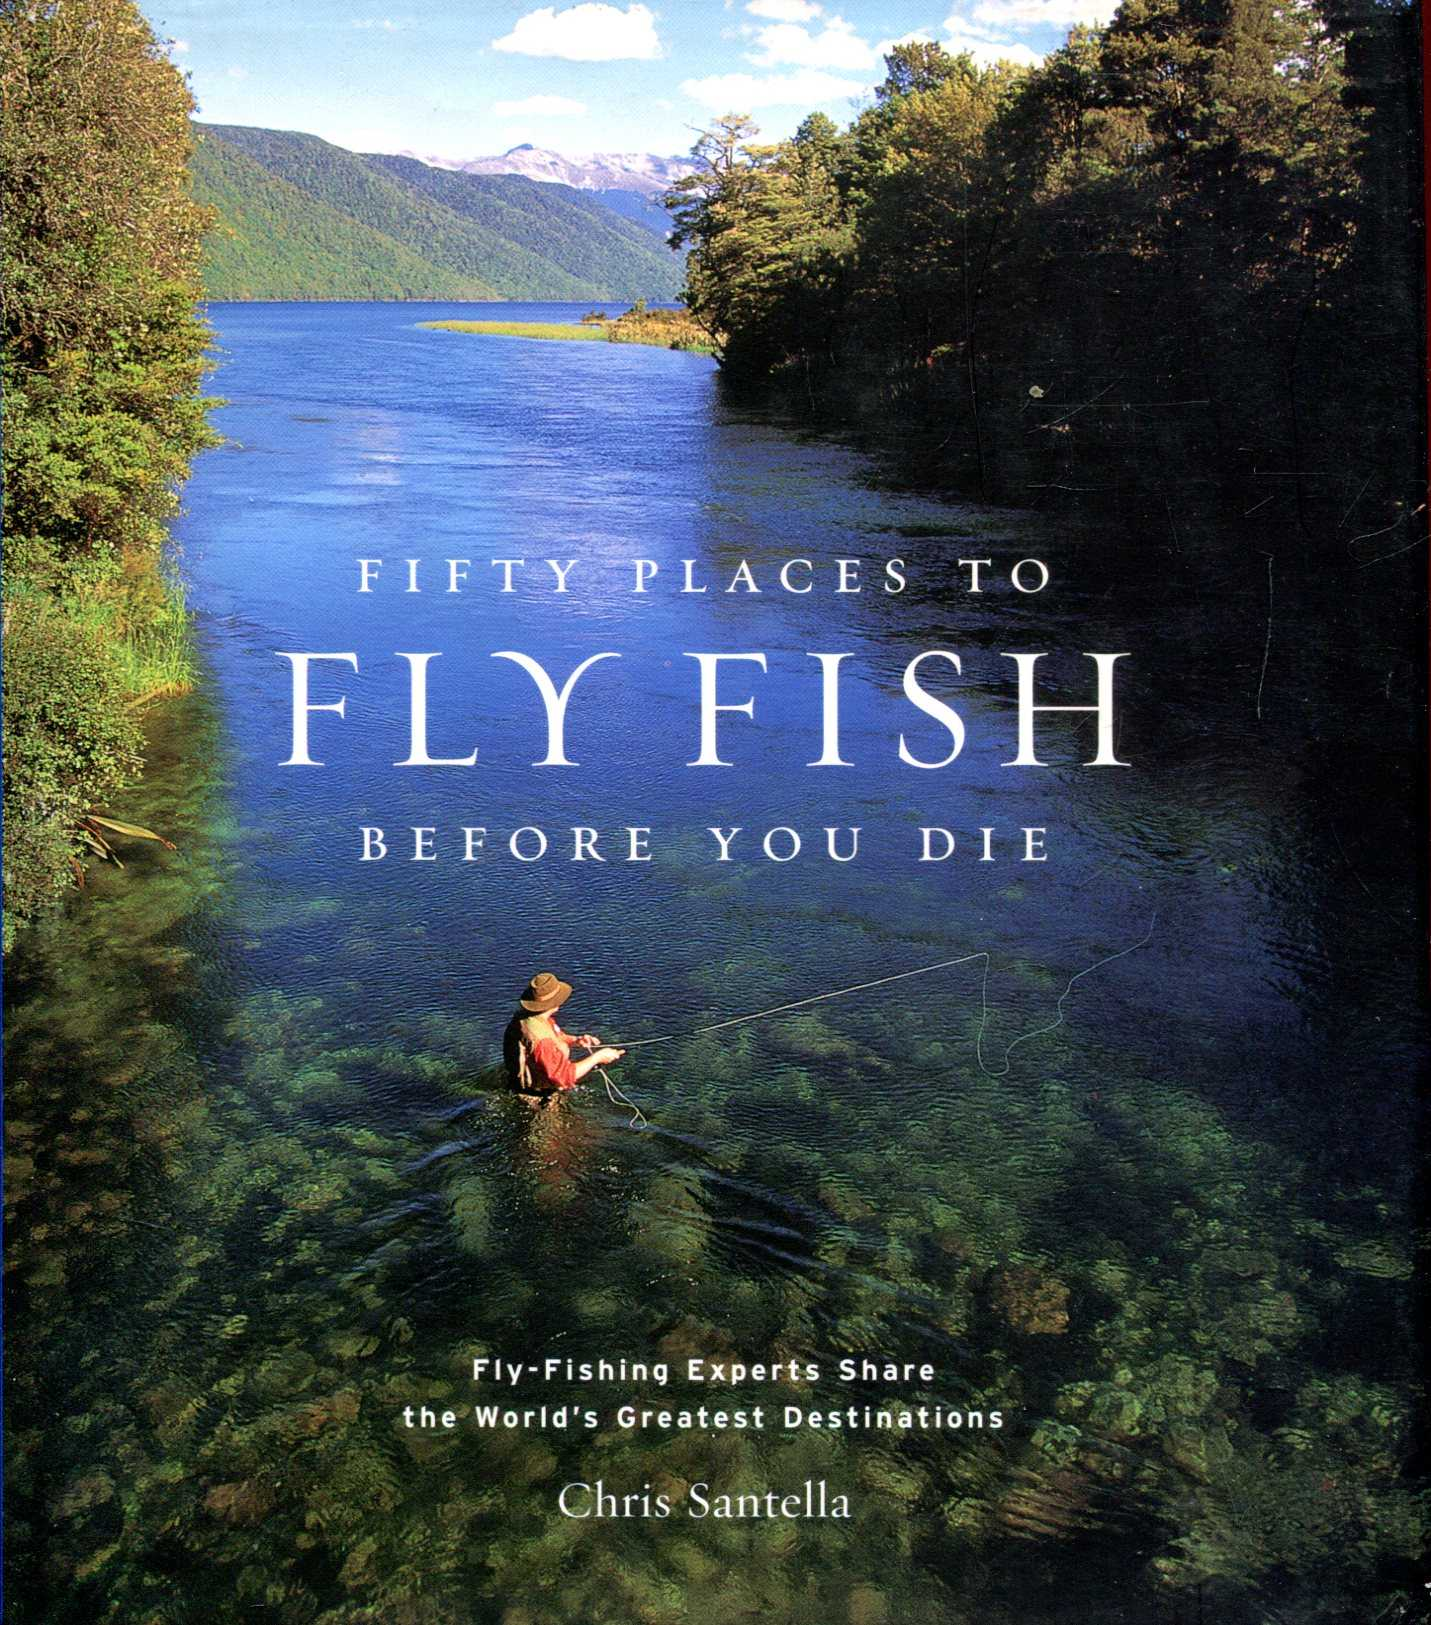 Image for Fifty Places to Fly Fish Before You Die: Fly-fishing Experts Share the World's Greatest Destinations